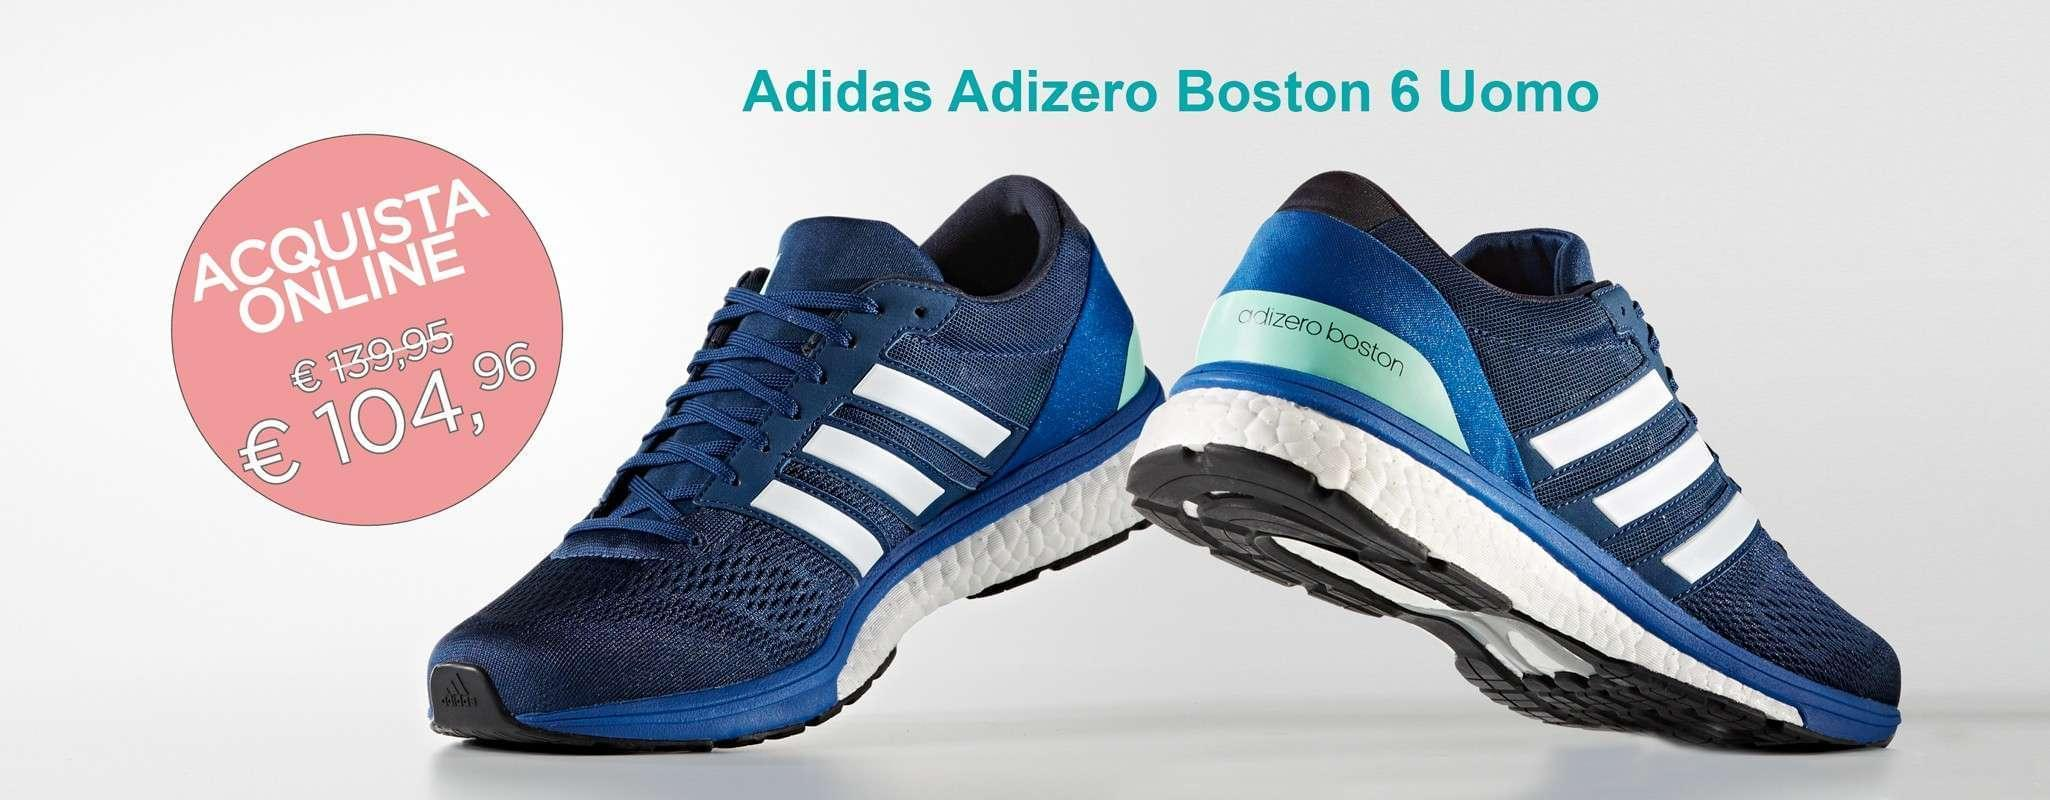 Adidas Adizero Boston 6 Uomo